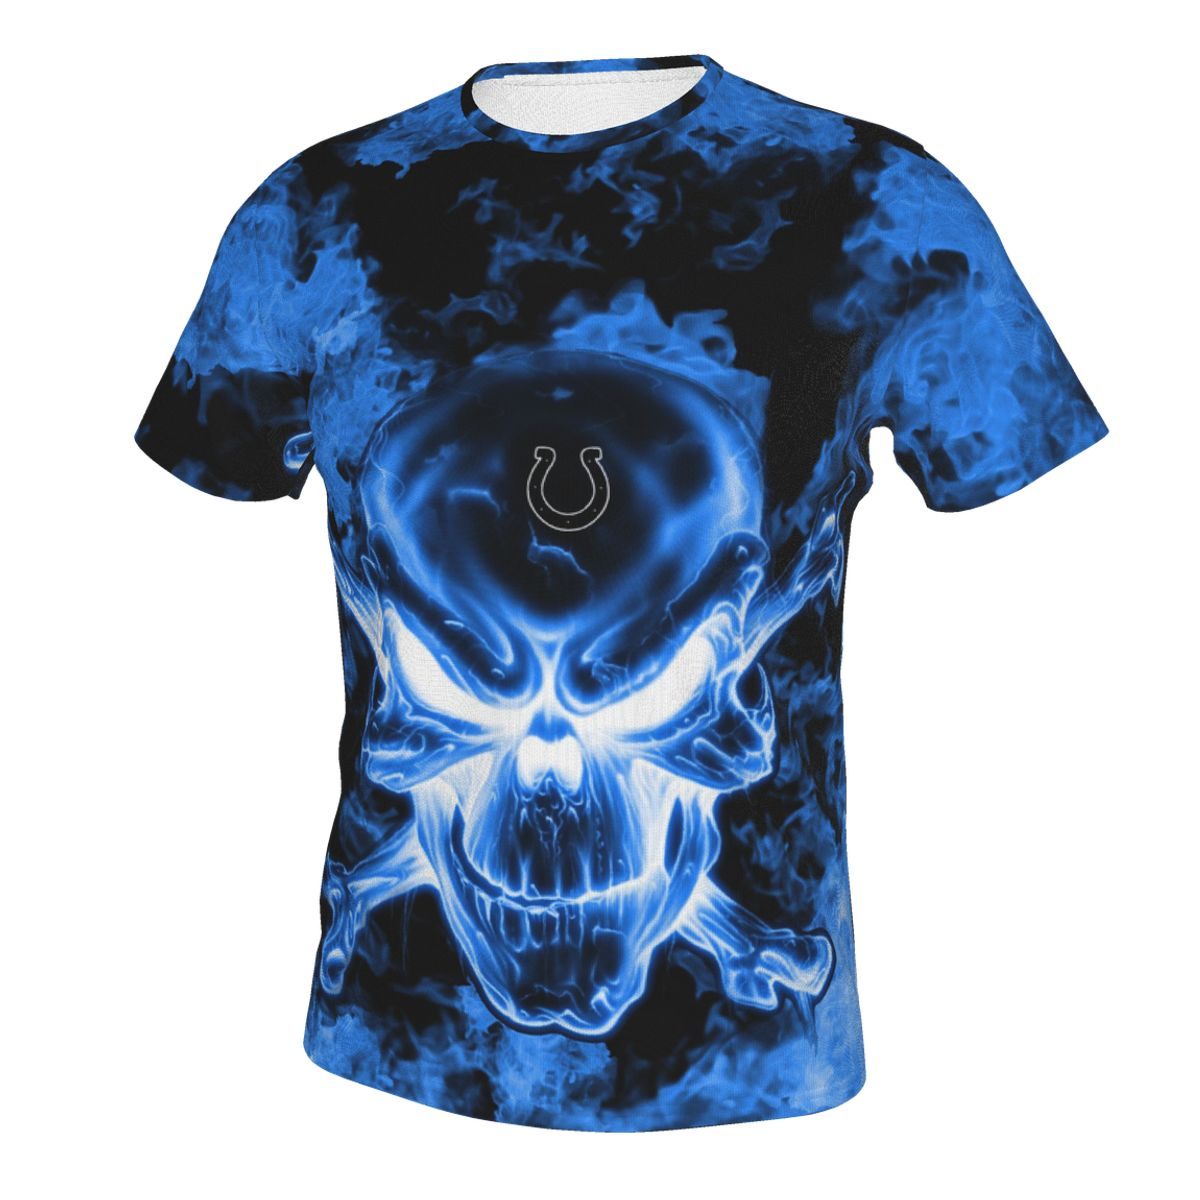 COLTS T-shirts For Men